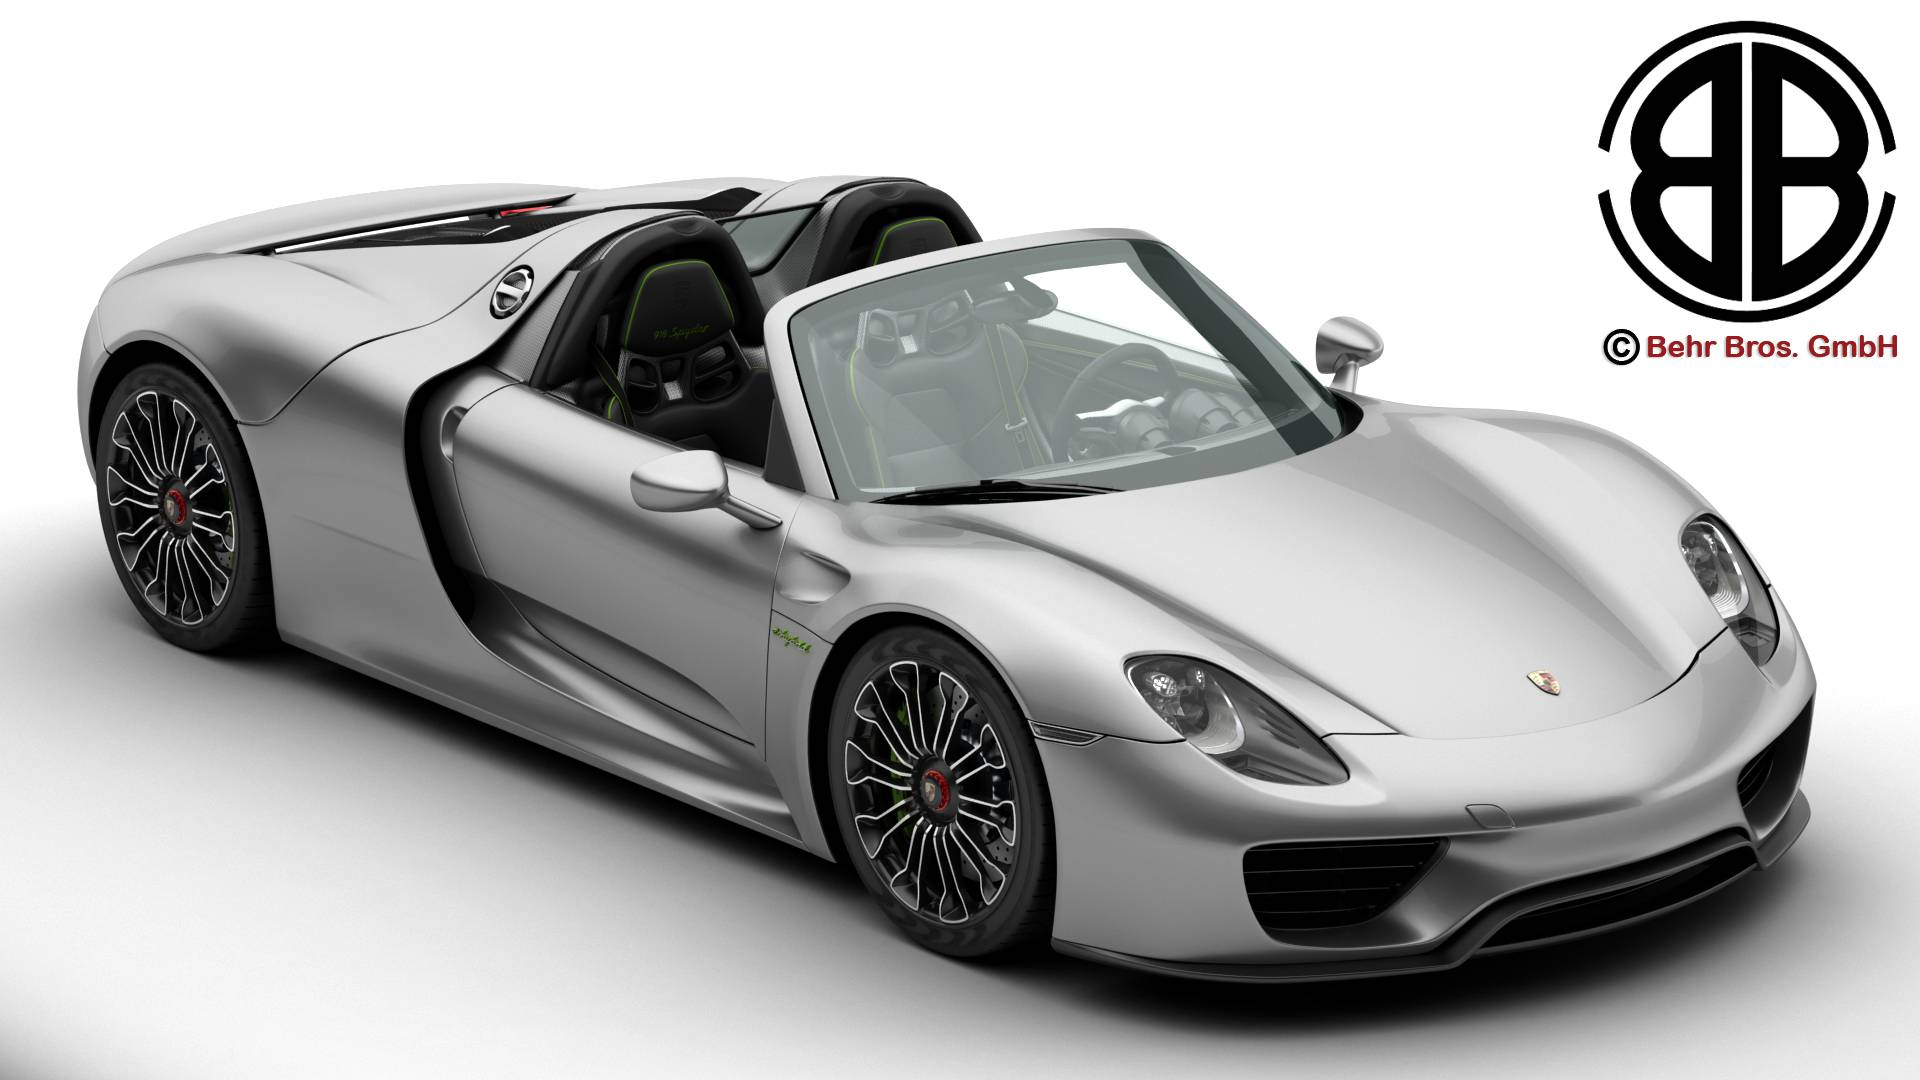 porsche 918 spyder with detachable roof 3d model vehicles 3d models spyder 3ds max fbx c4d lwo. Black Bedroom Furniture Sets. Home Design Ideas